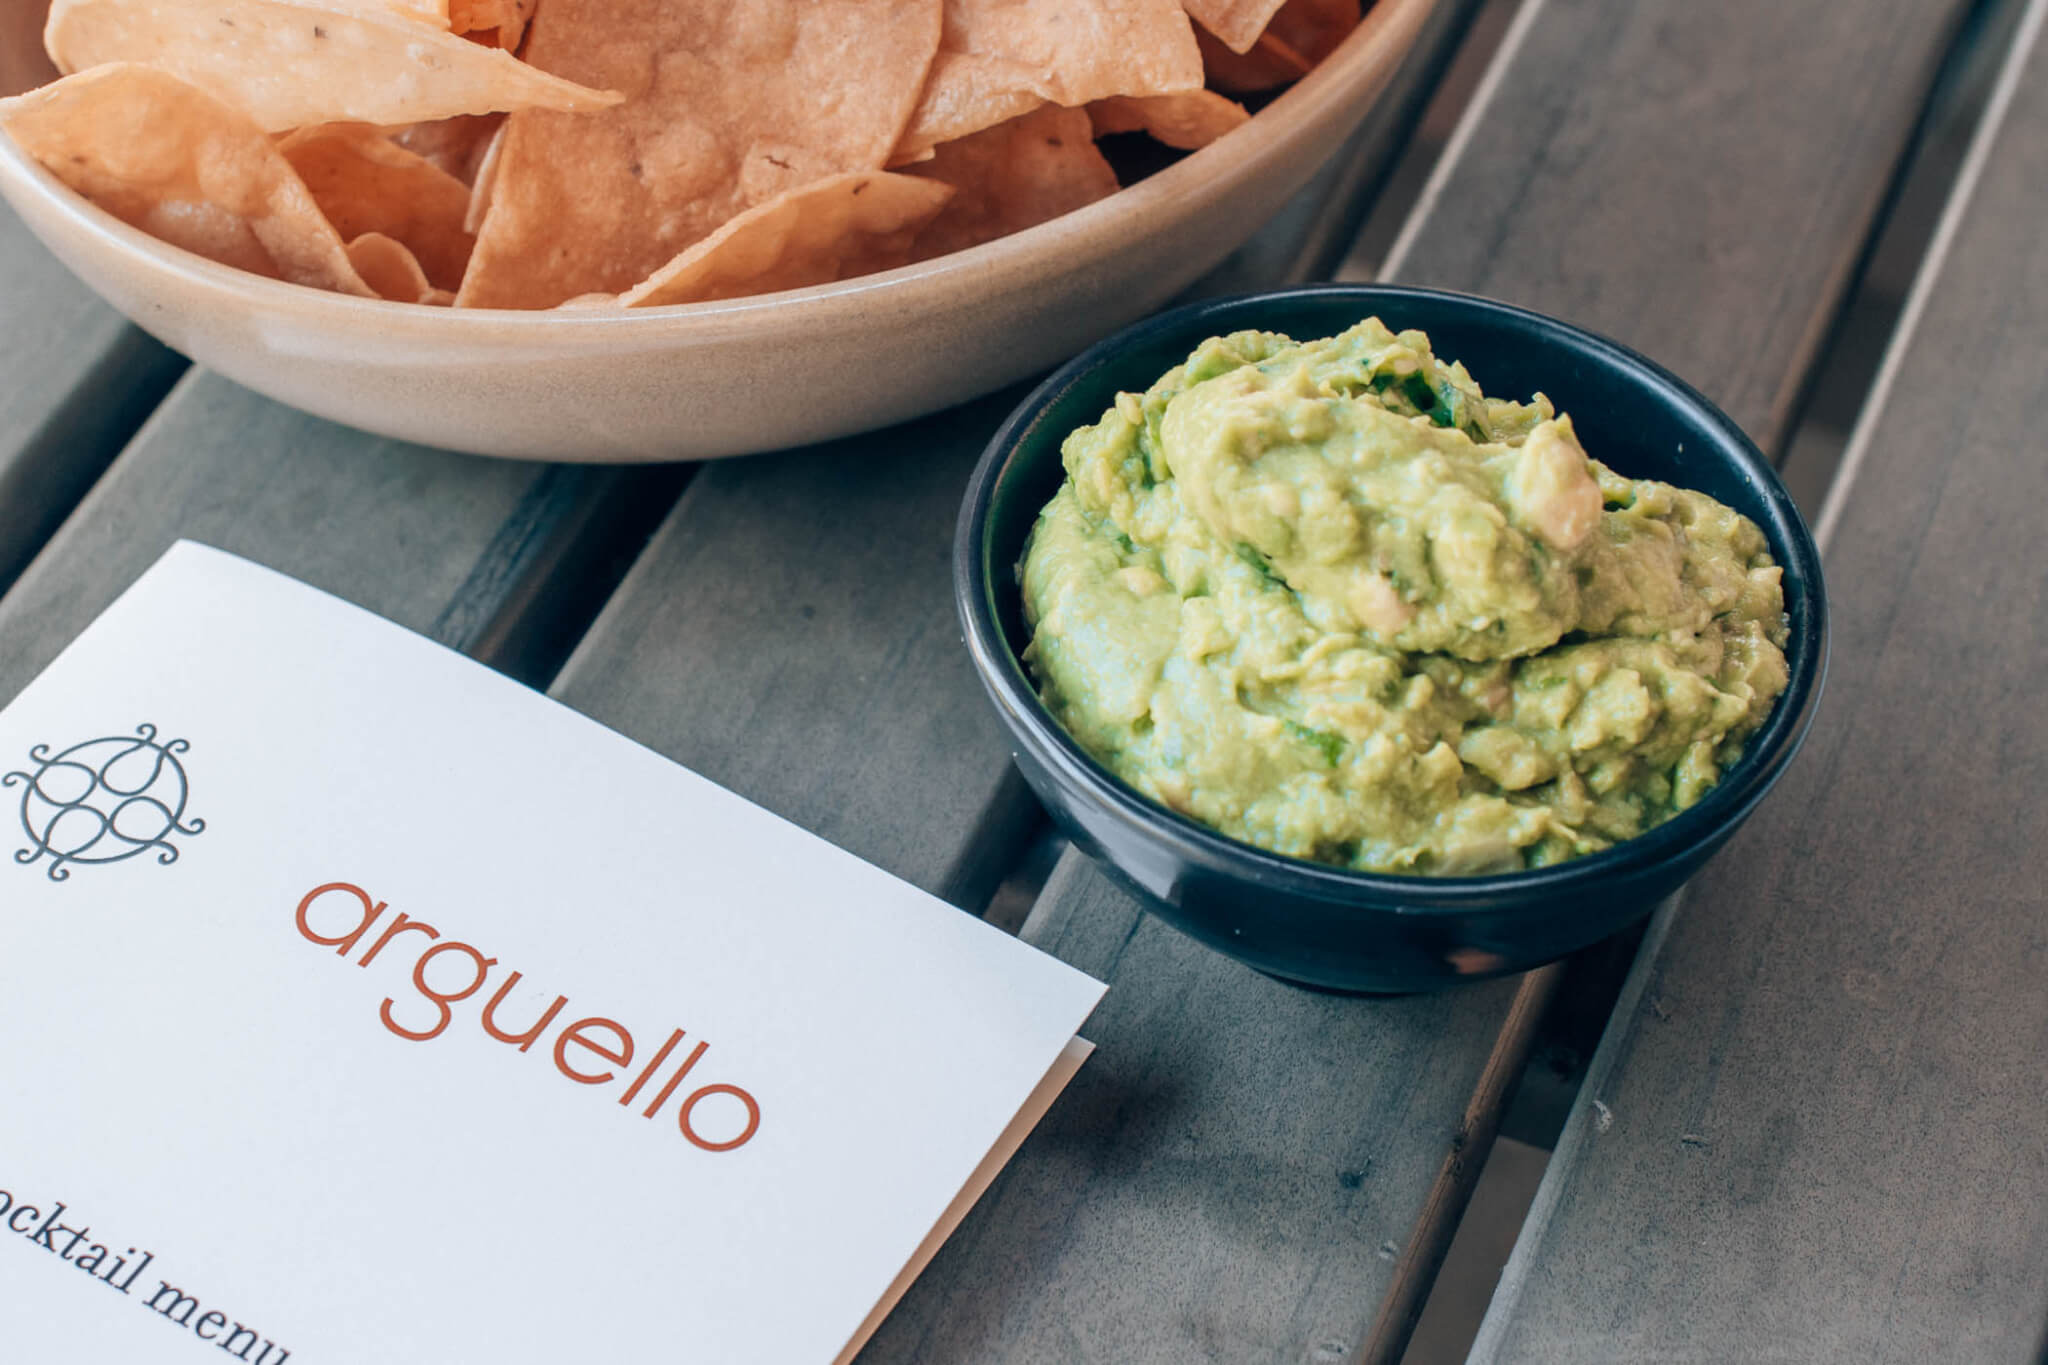 Arguello Restaurant: Delicious Mexican Food in SF